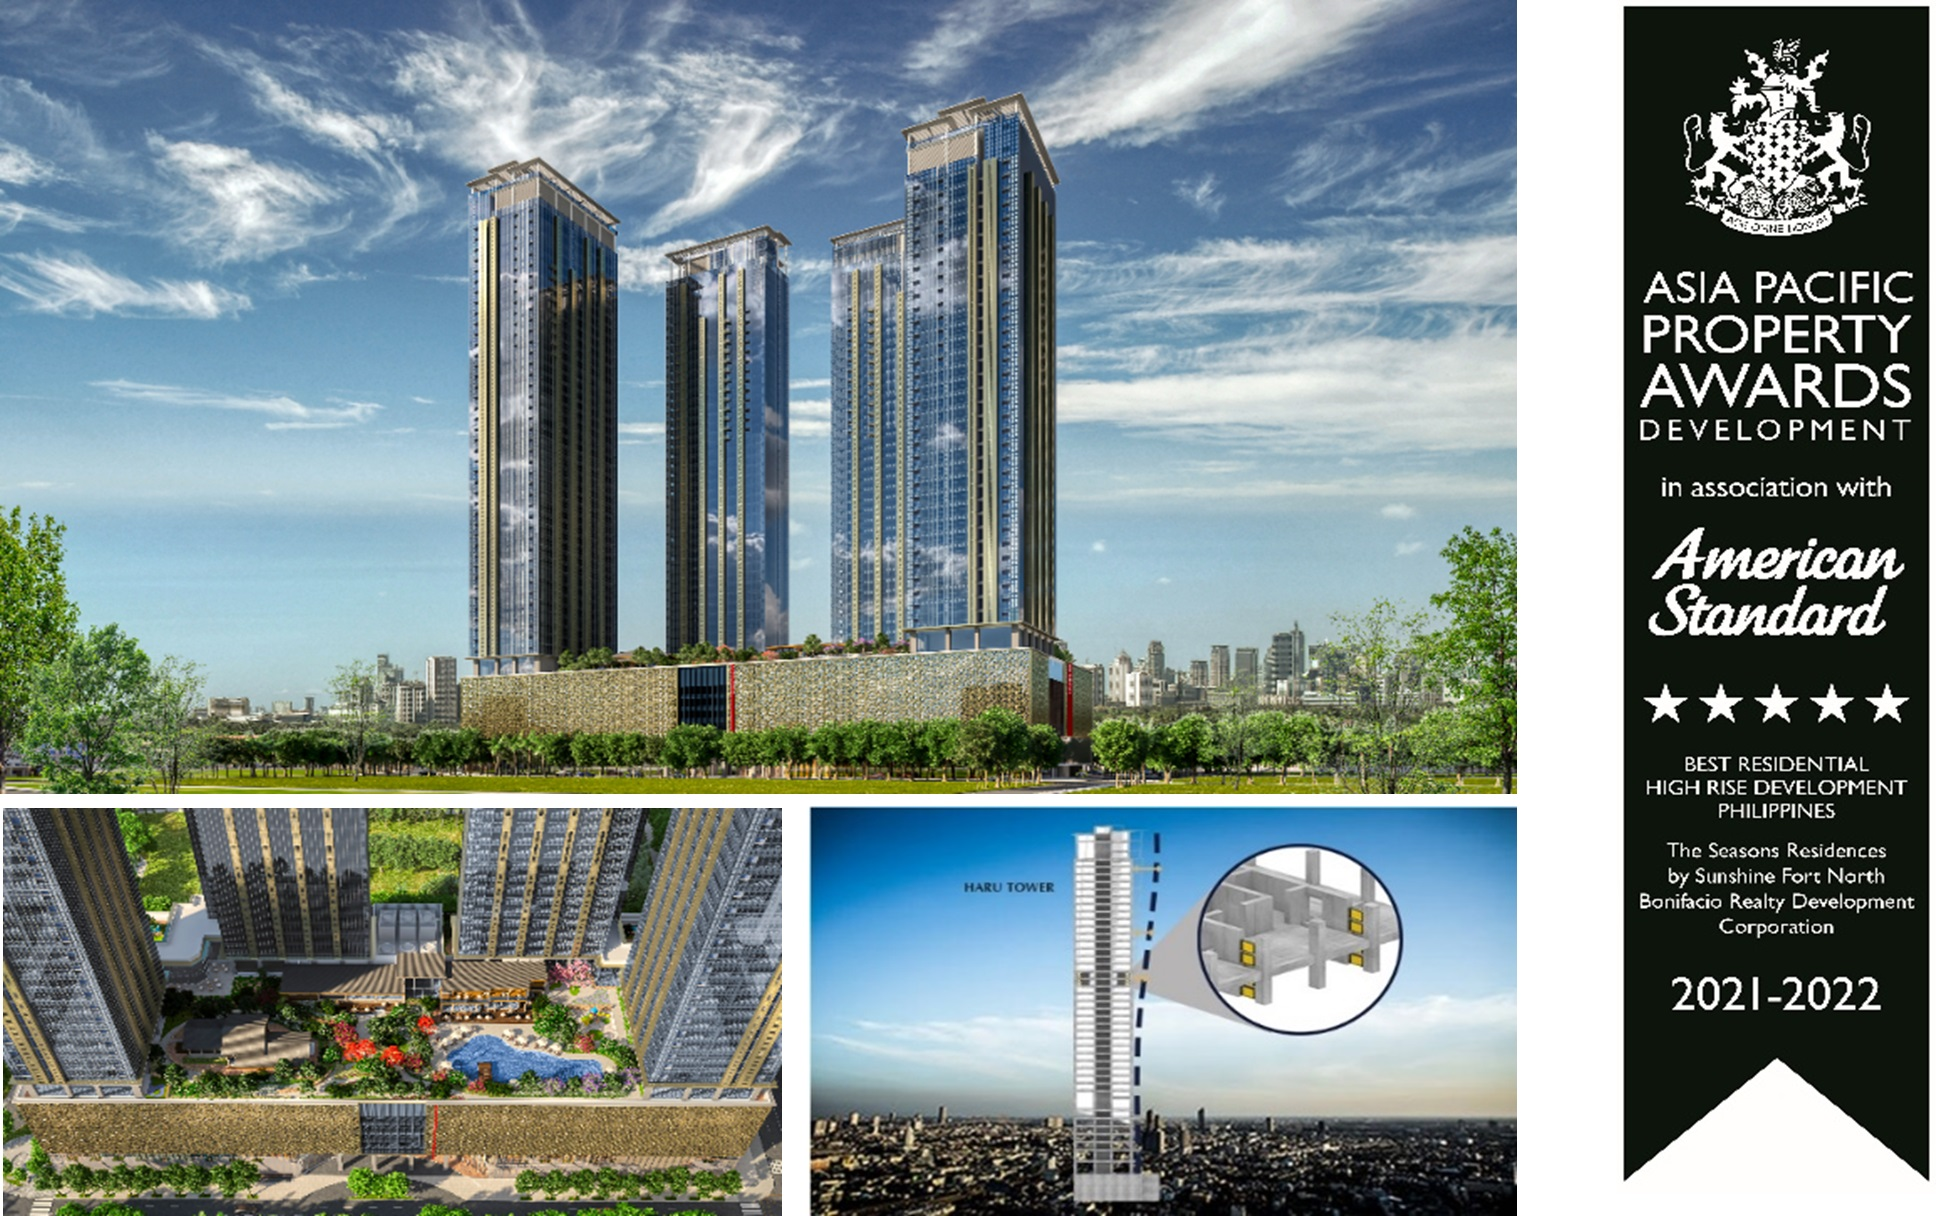 """Condominium """"The Seasons Residence"""" in Manila, Philippines, Receives the Highest Award in the Philippines and Five Stars in the Asia Pacific Region in """"International Property Awards"""" Recognizing Excellent Real Estate Projects"""